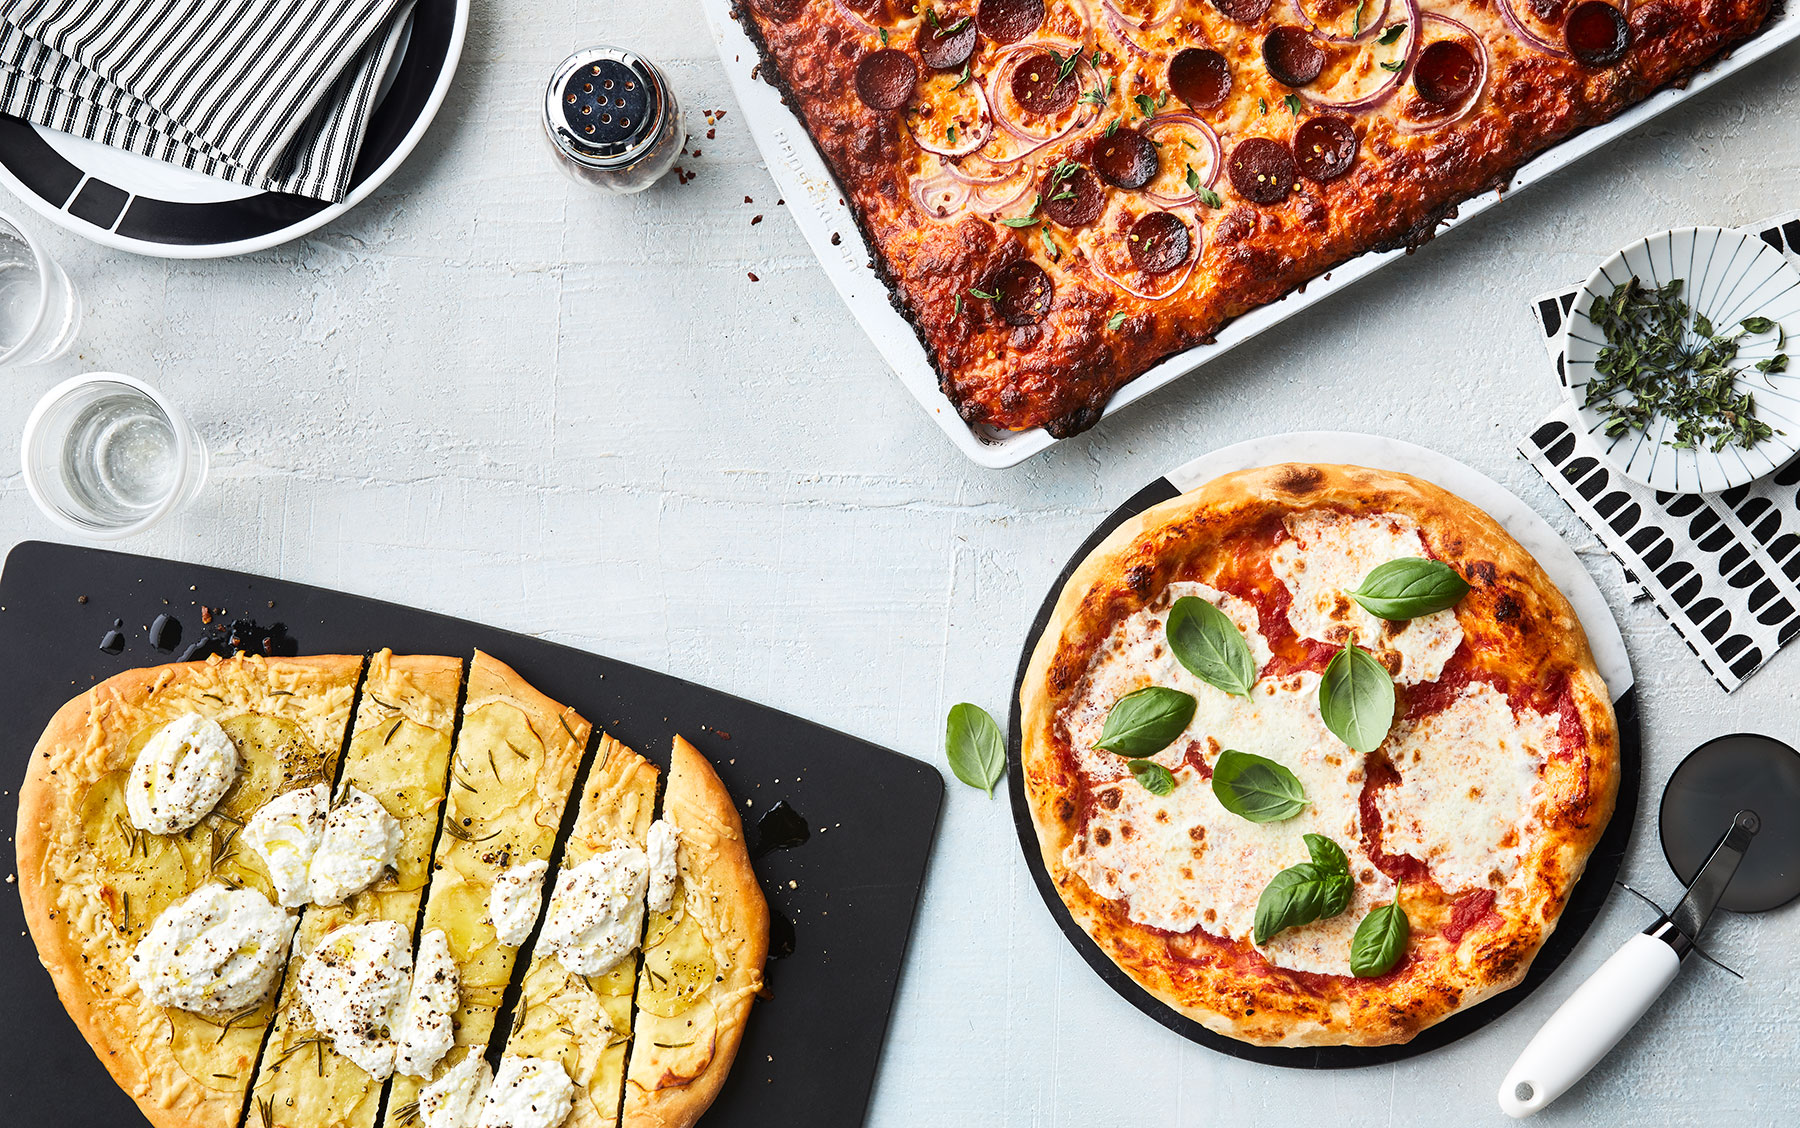 5 Incredibly Delicious Pizzas from One Easy Dough Recipe